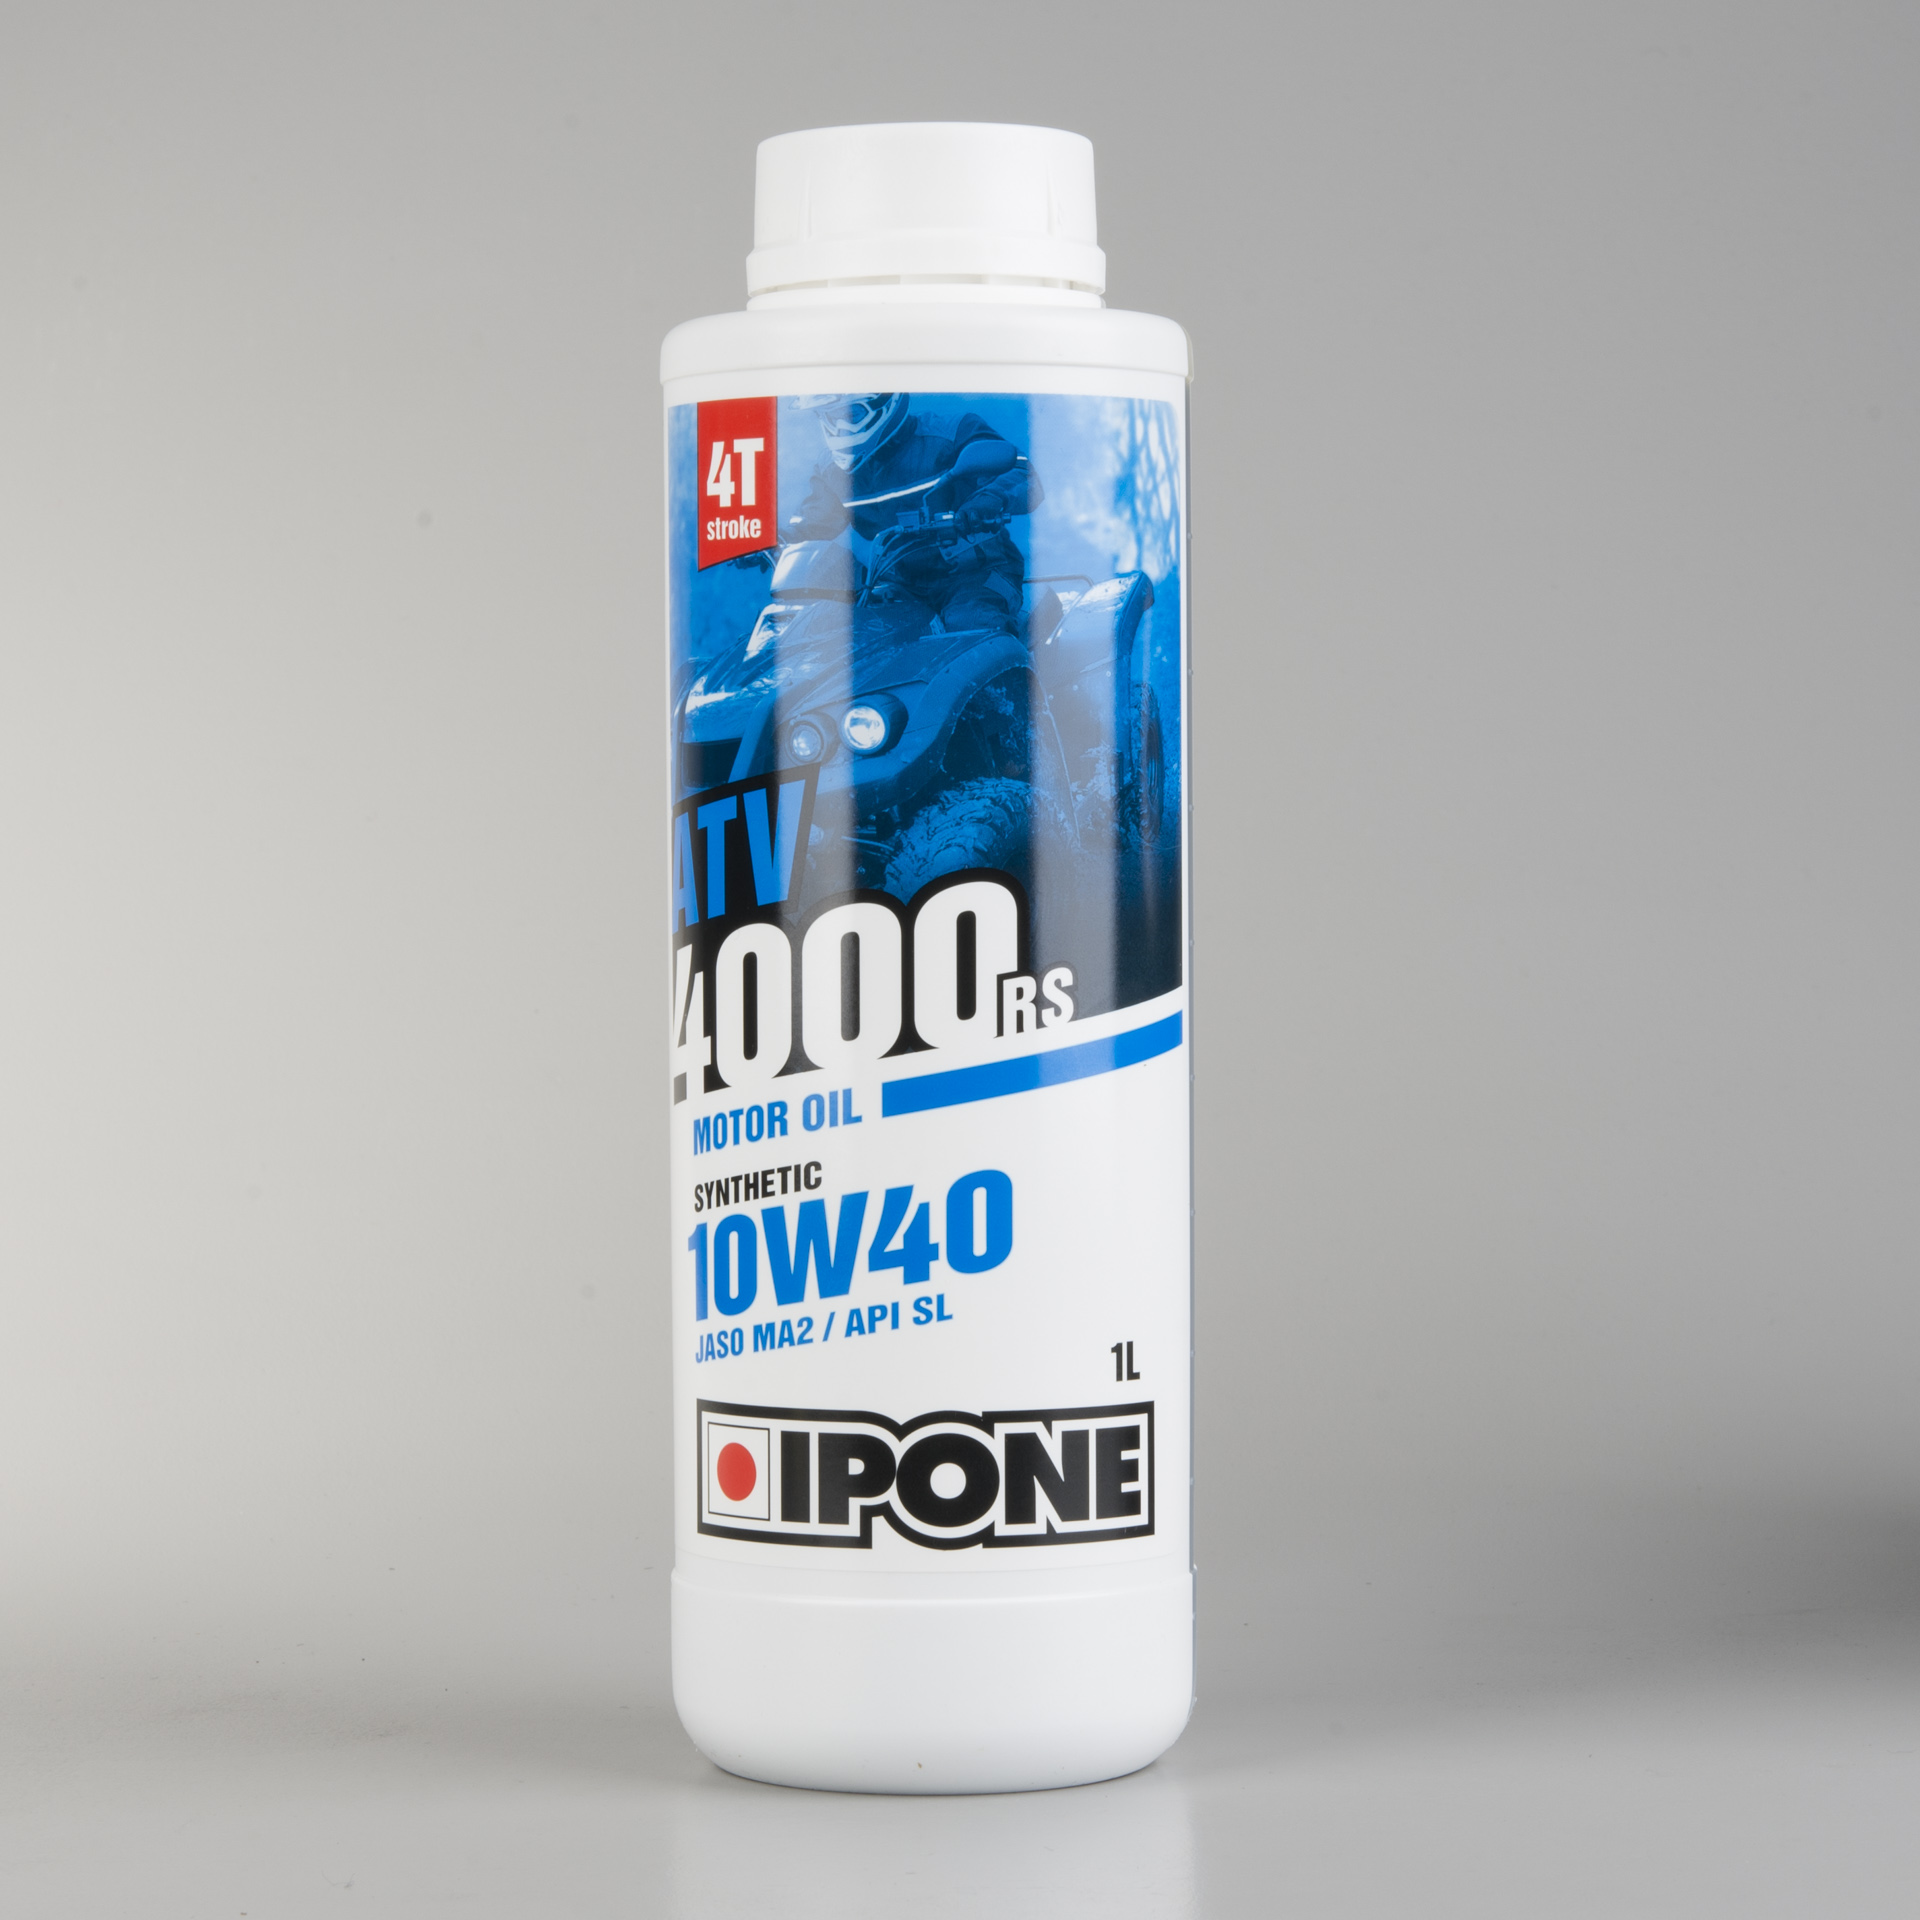 Ipone ATV 4000 RS 10w40 Used Oil Analysis